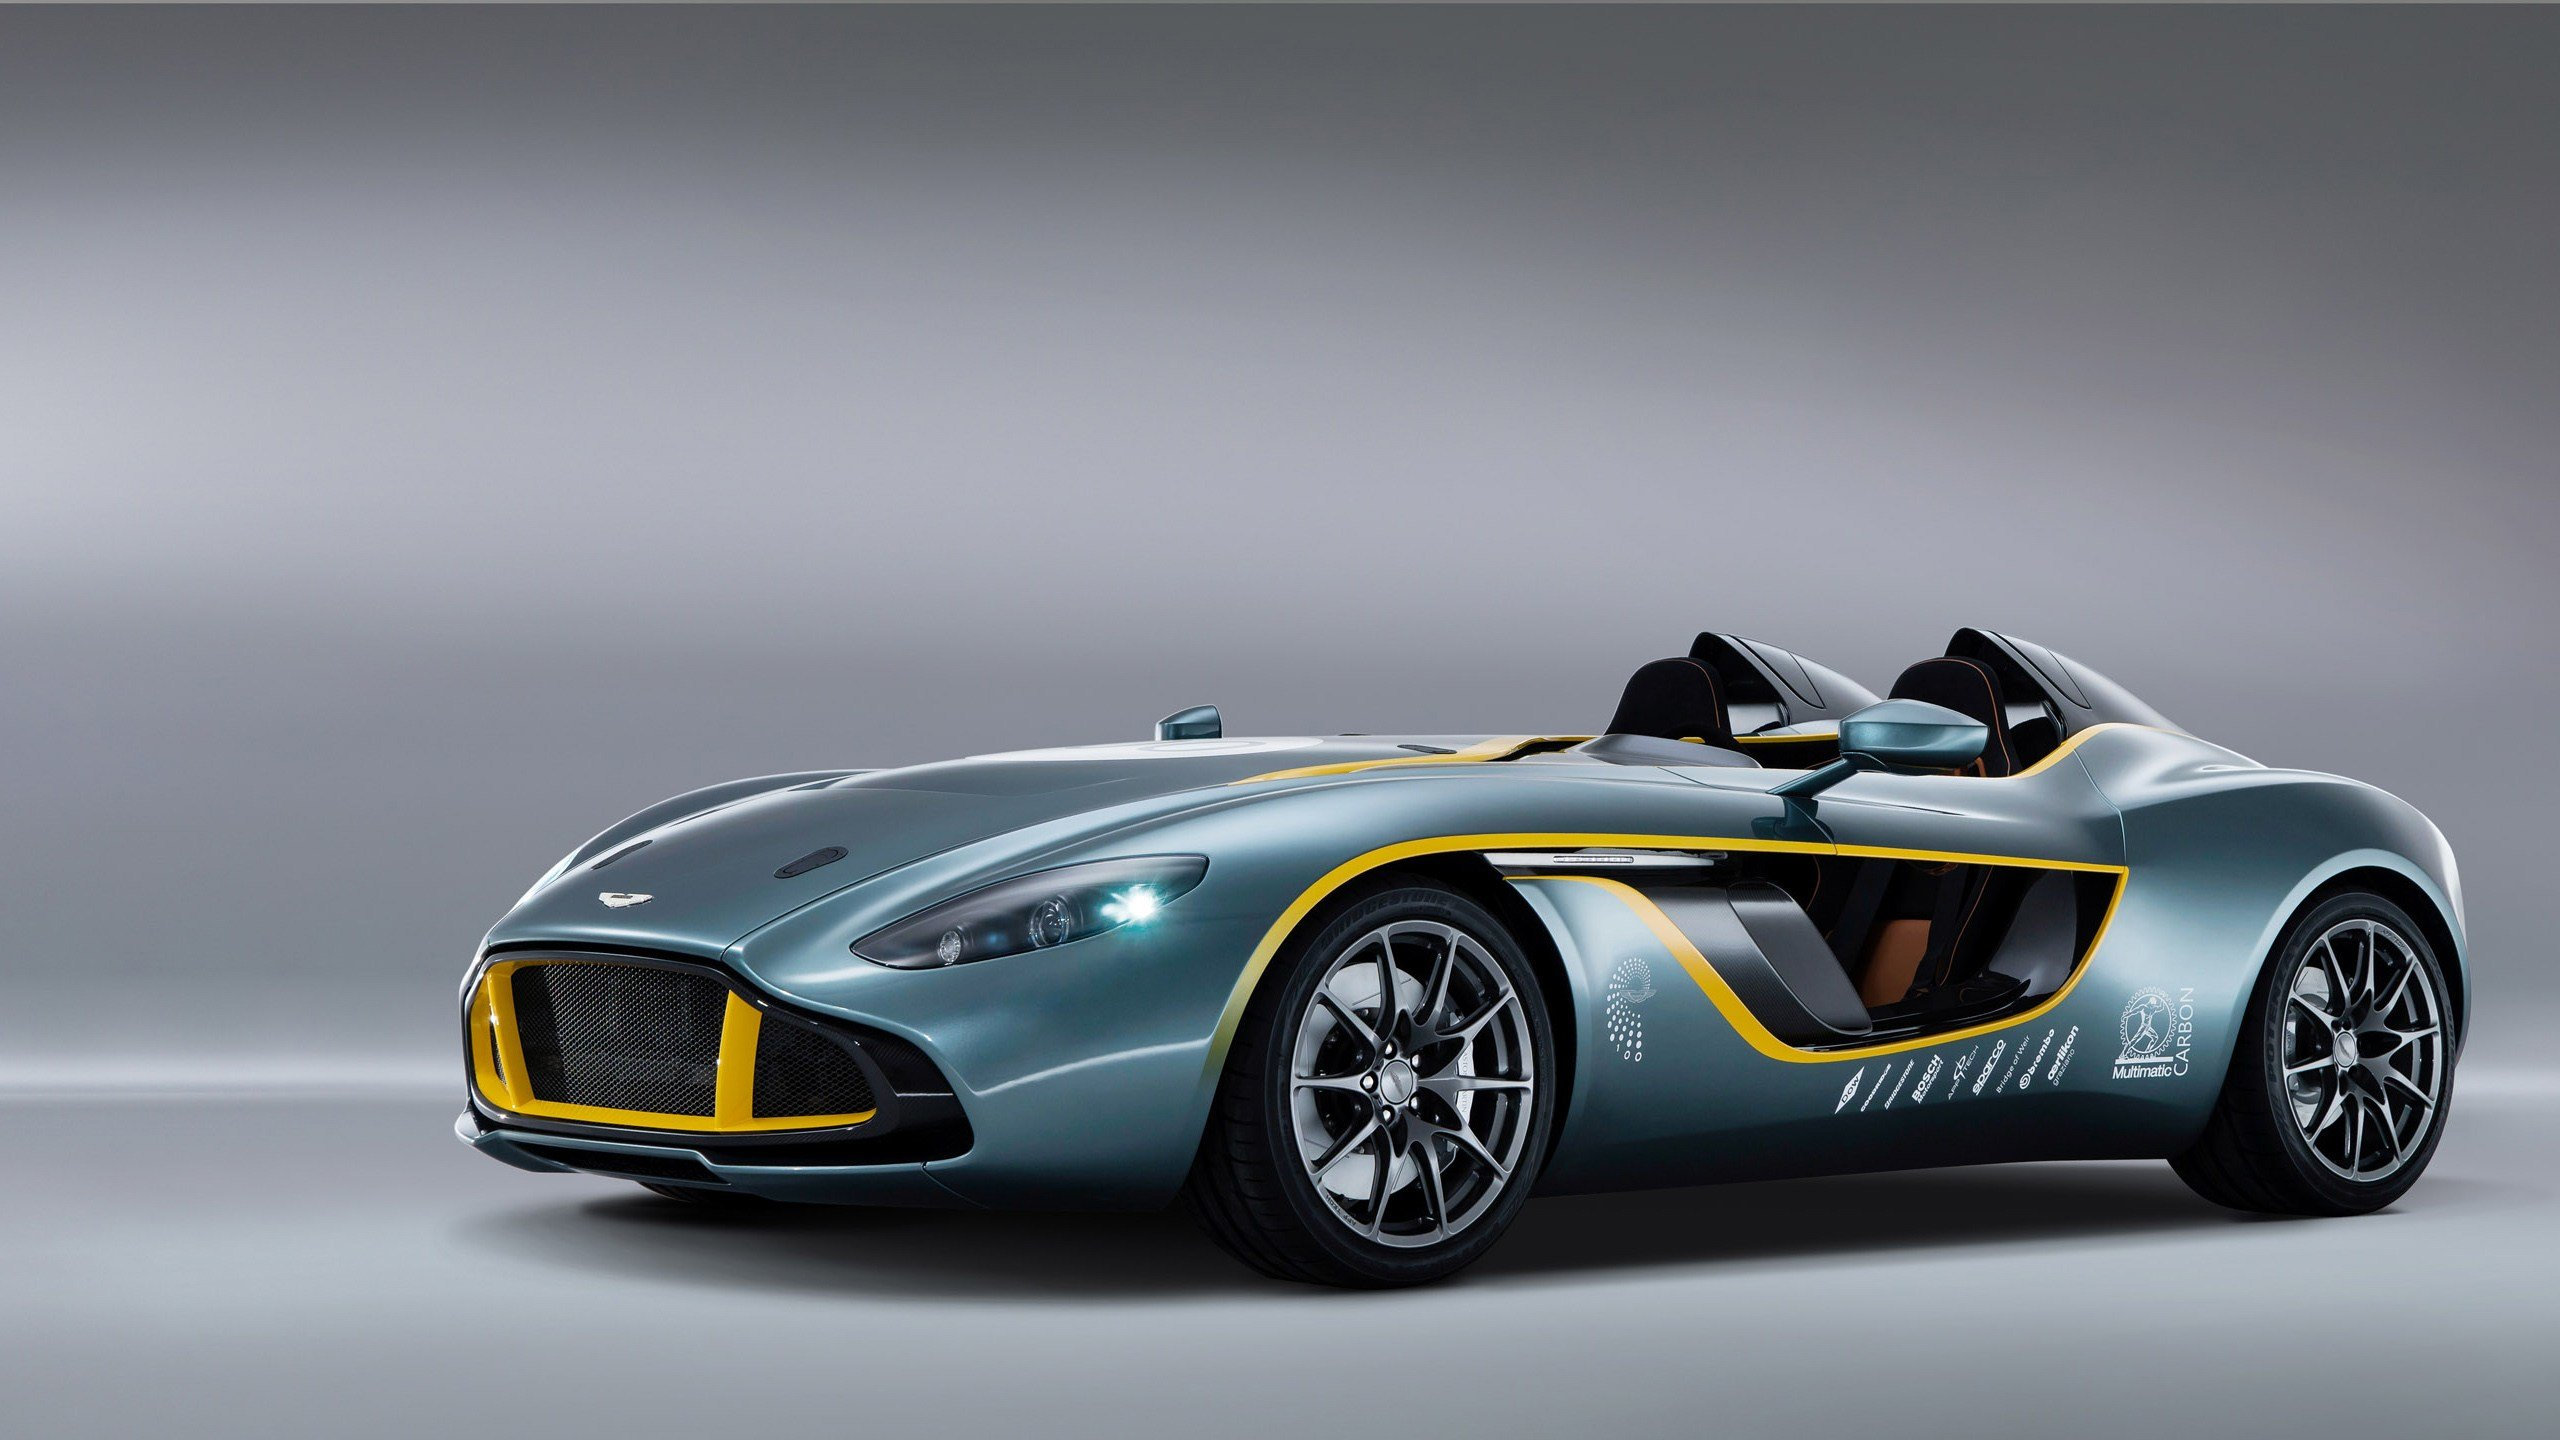 Latest 2015 Aston Martin Goodwood Festival Of Speed Wallpaper Free Download